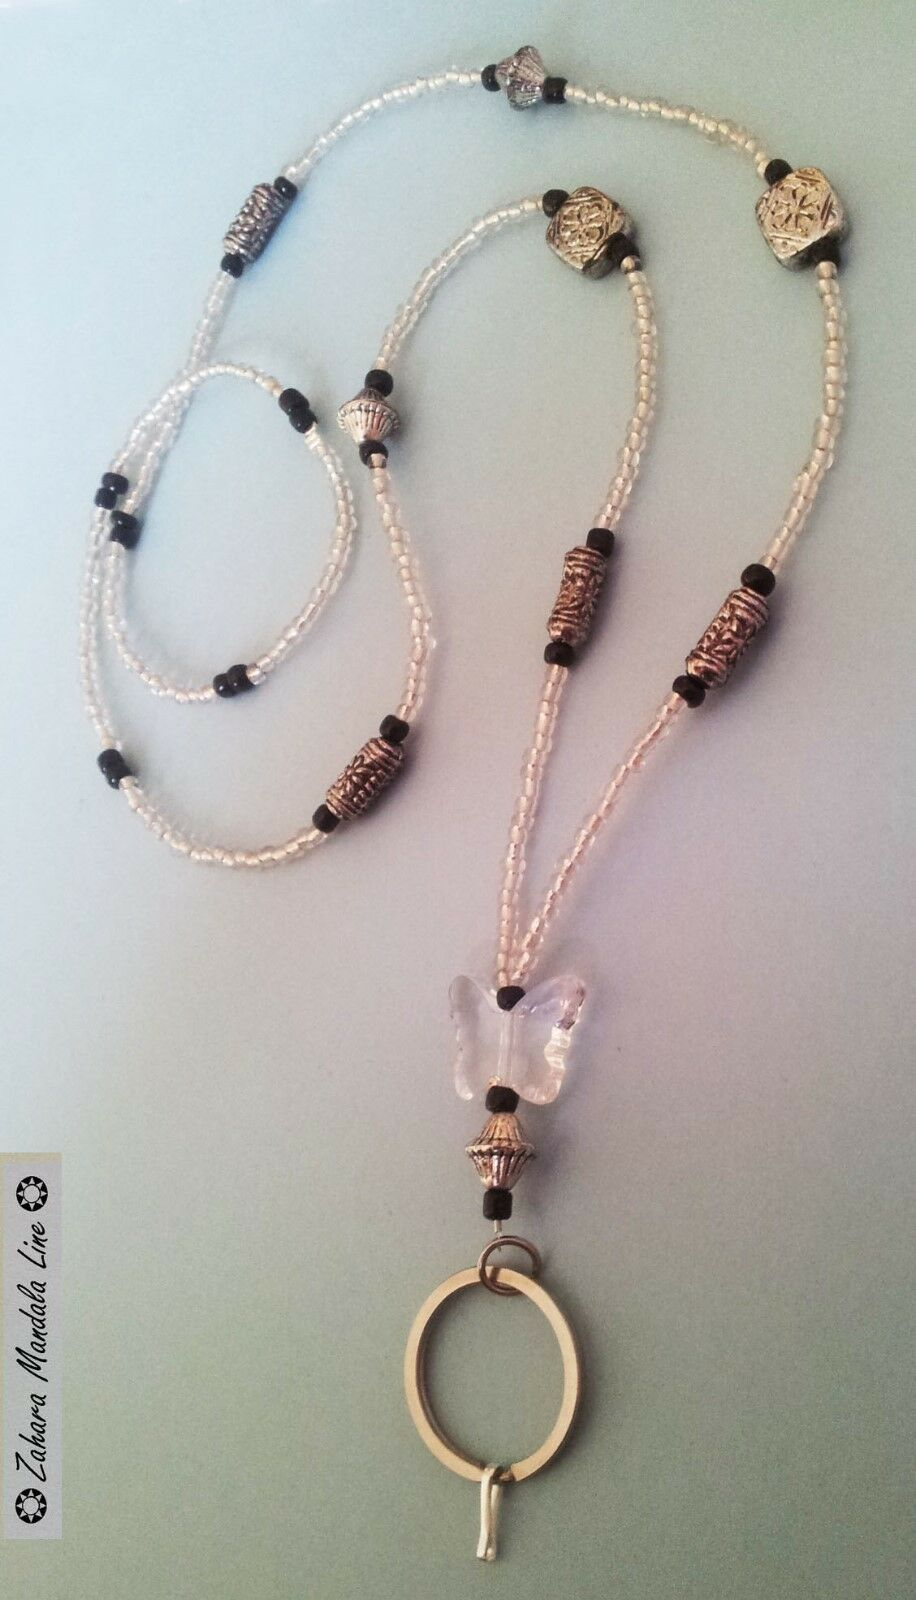 Clear Butterfly & Black ID Badge Holder HANDMADE Beaded Lanyard Fashion Necklace